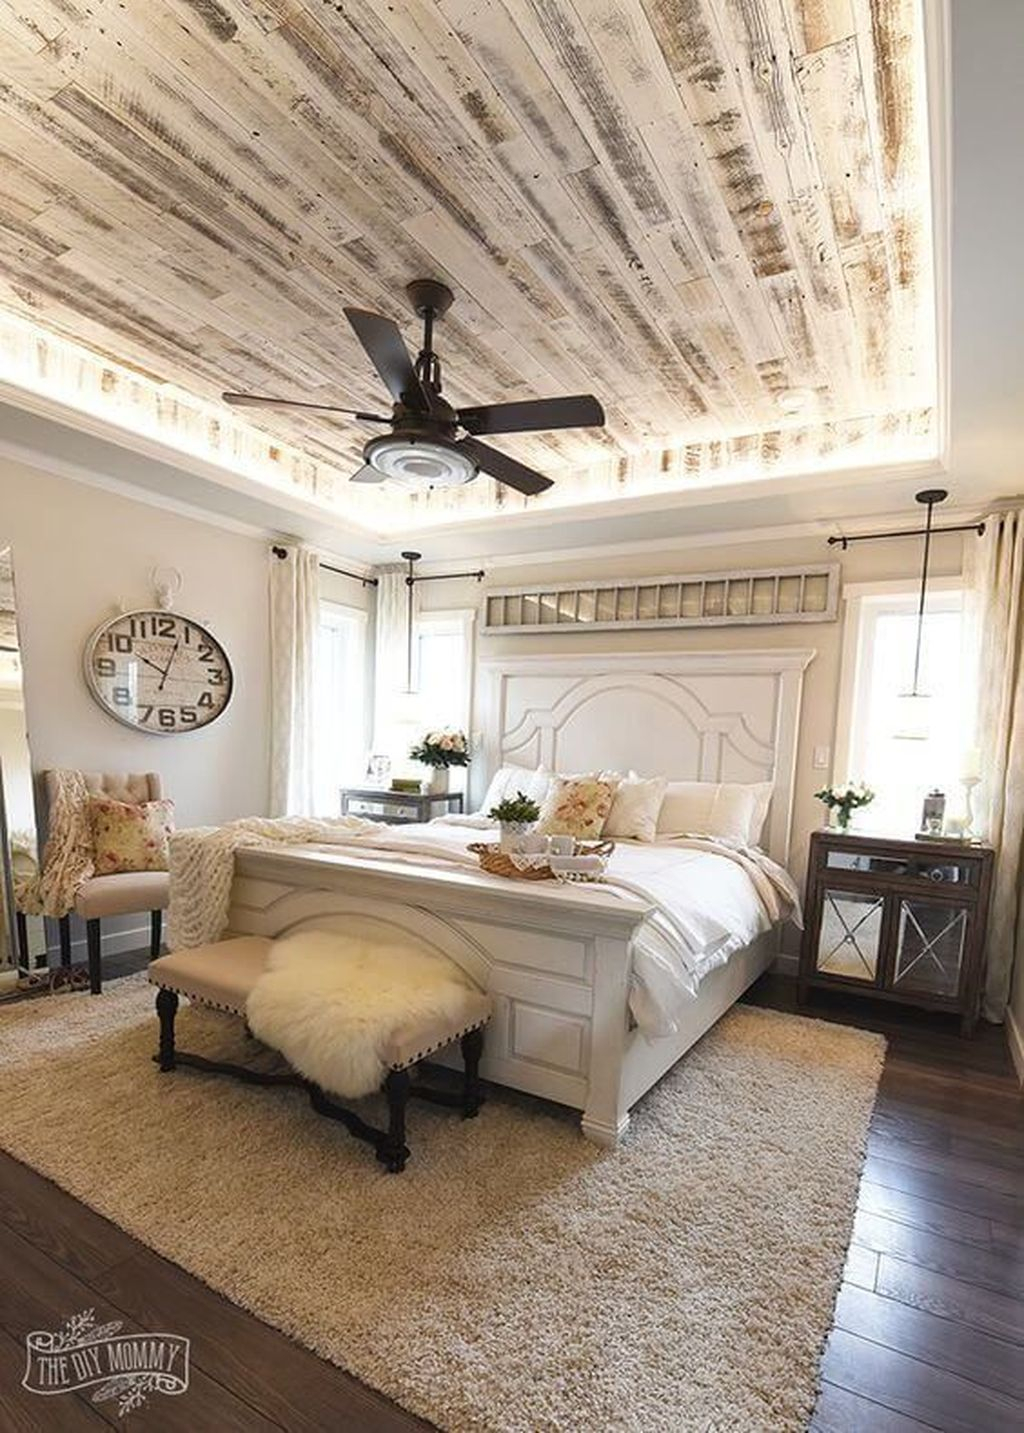 Cool French Country Master Bedroom Design Ideas With Farmhouse Style 16